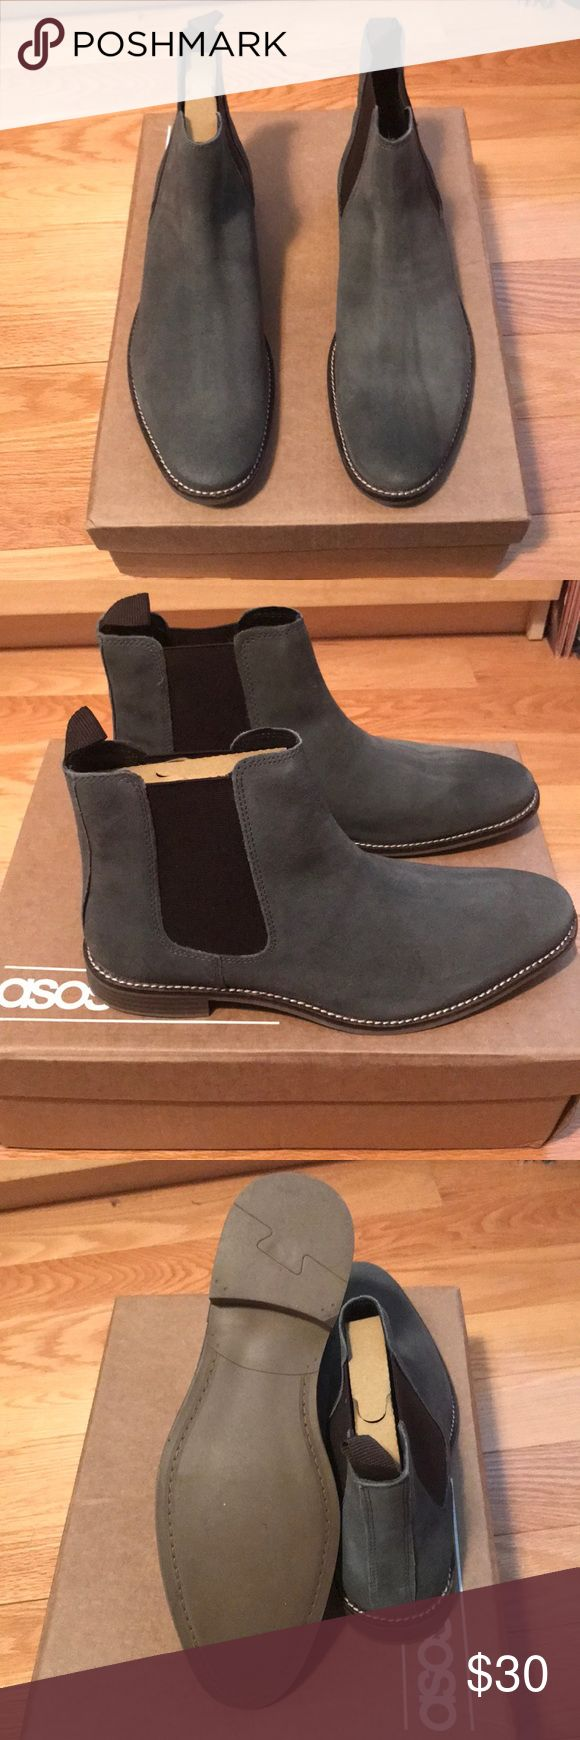 ASOS Men's Grey Suede Chelsea Boot - UK 8 Men's Grey Chelsea Boot in UK 8. These are BRAND new and have never been worn. ASOS Shoes